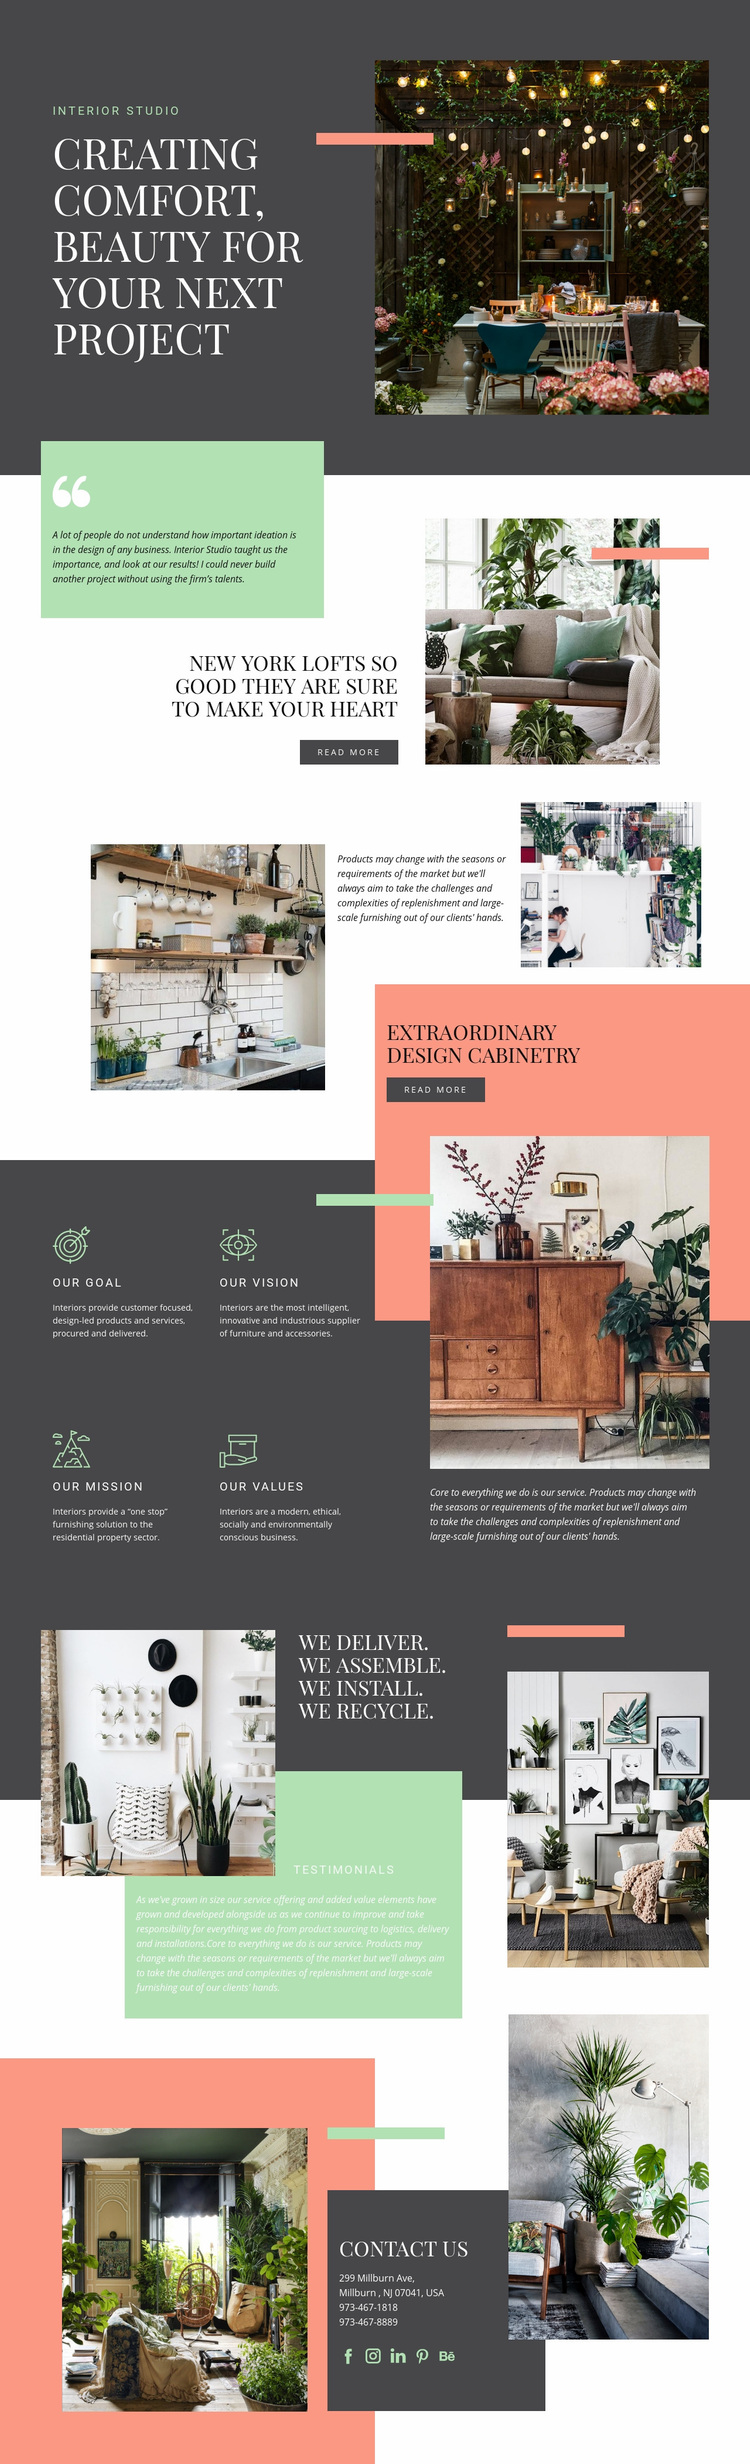 Comfort in your home Web Page Designer